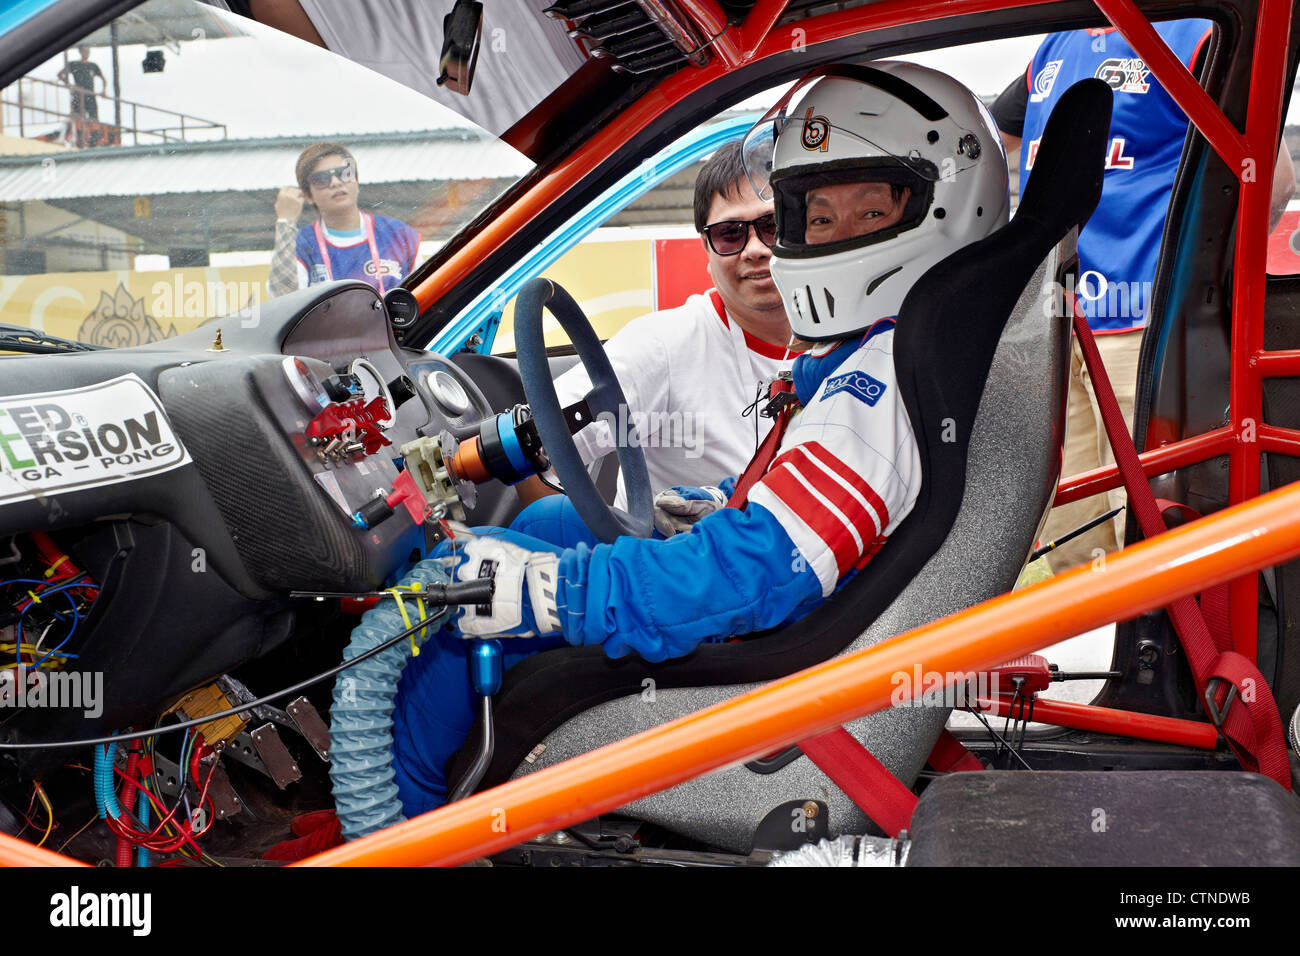 Roll Cage Stock Photos Amp Roll Cage Stock Images Alamy